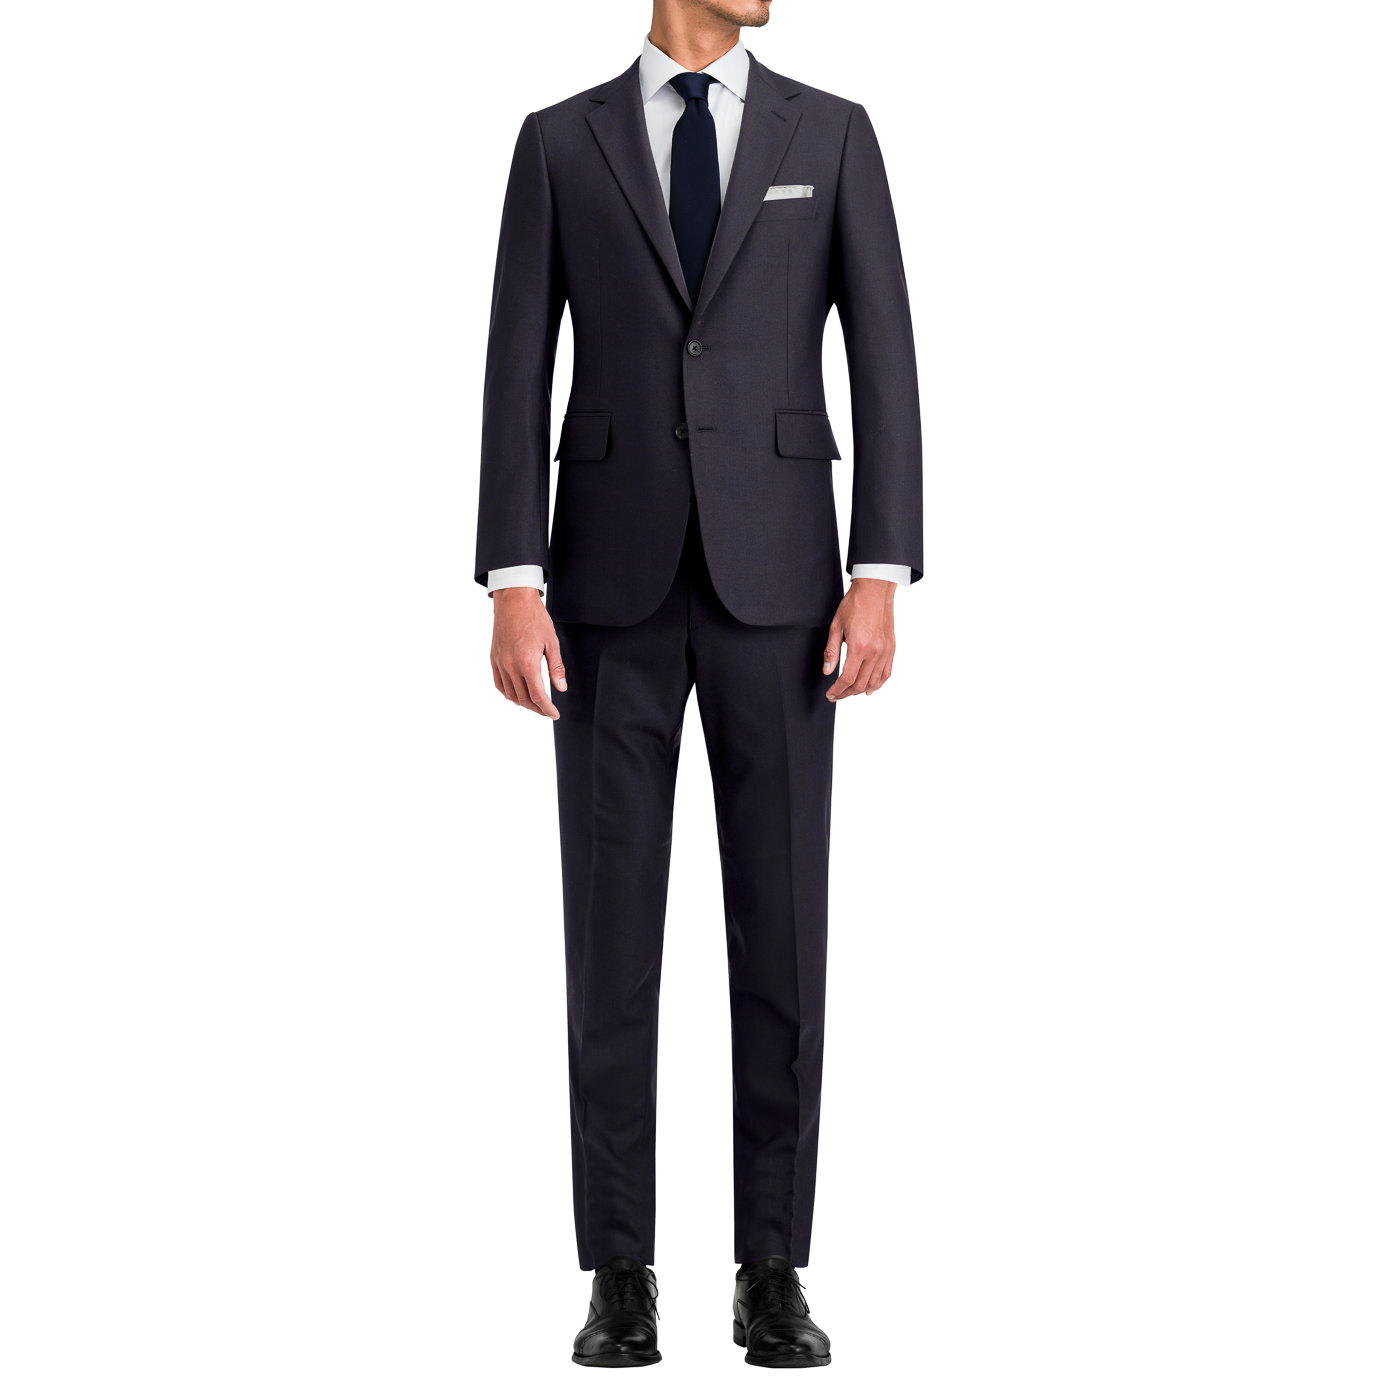 sales_suits_right